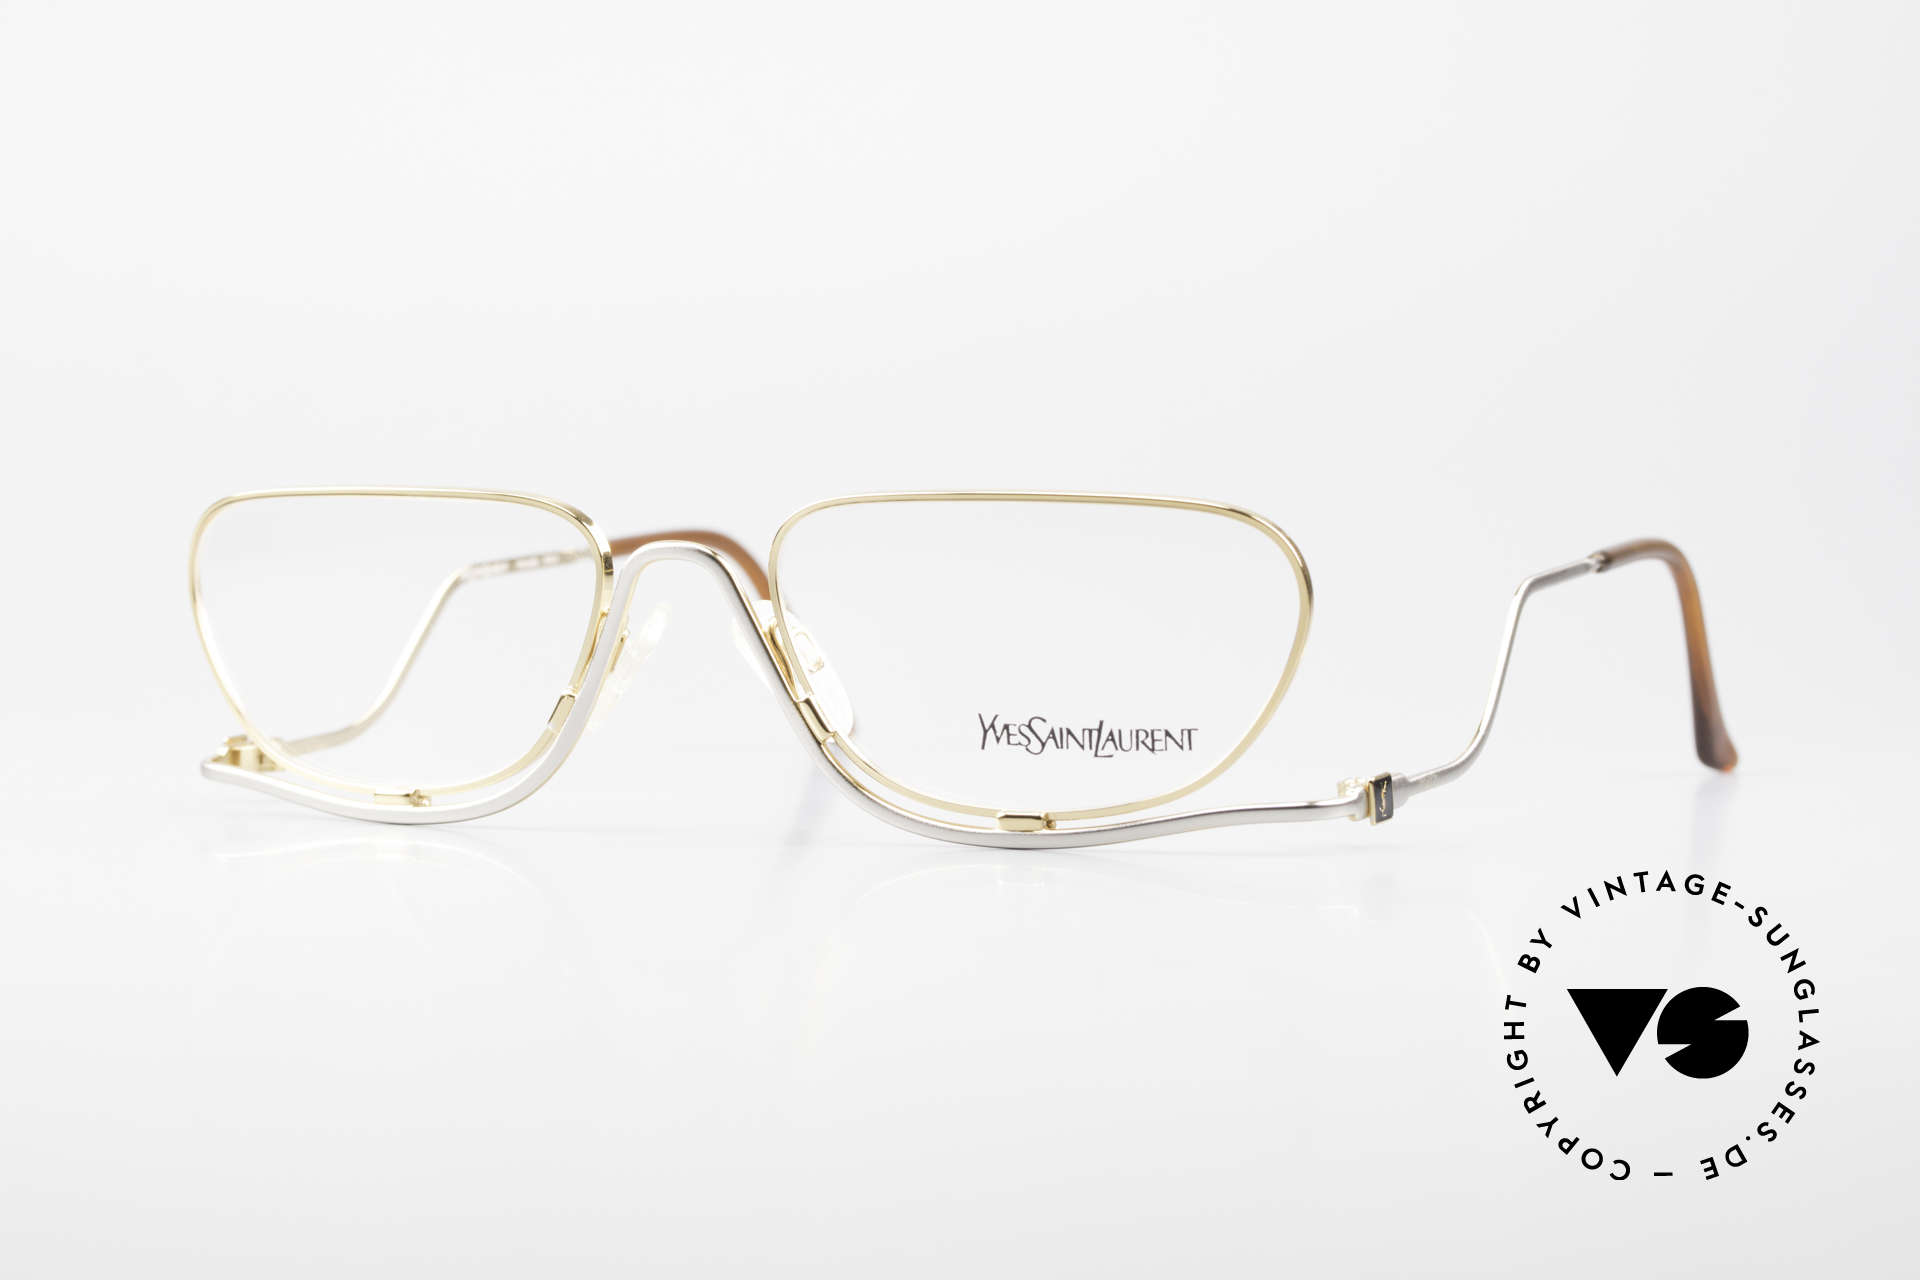 Yves Saint Laurent 4012 Y116 Extraordinary Eyeglasses, extravagant vintage reading glasses for ladies, Made for Women